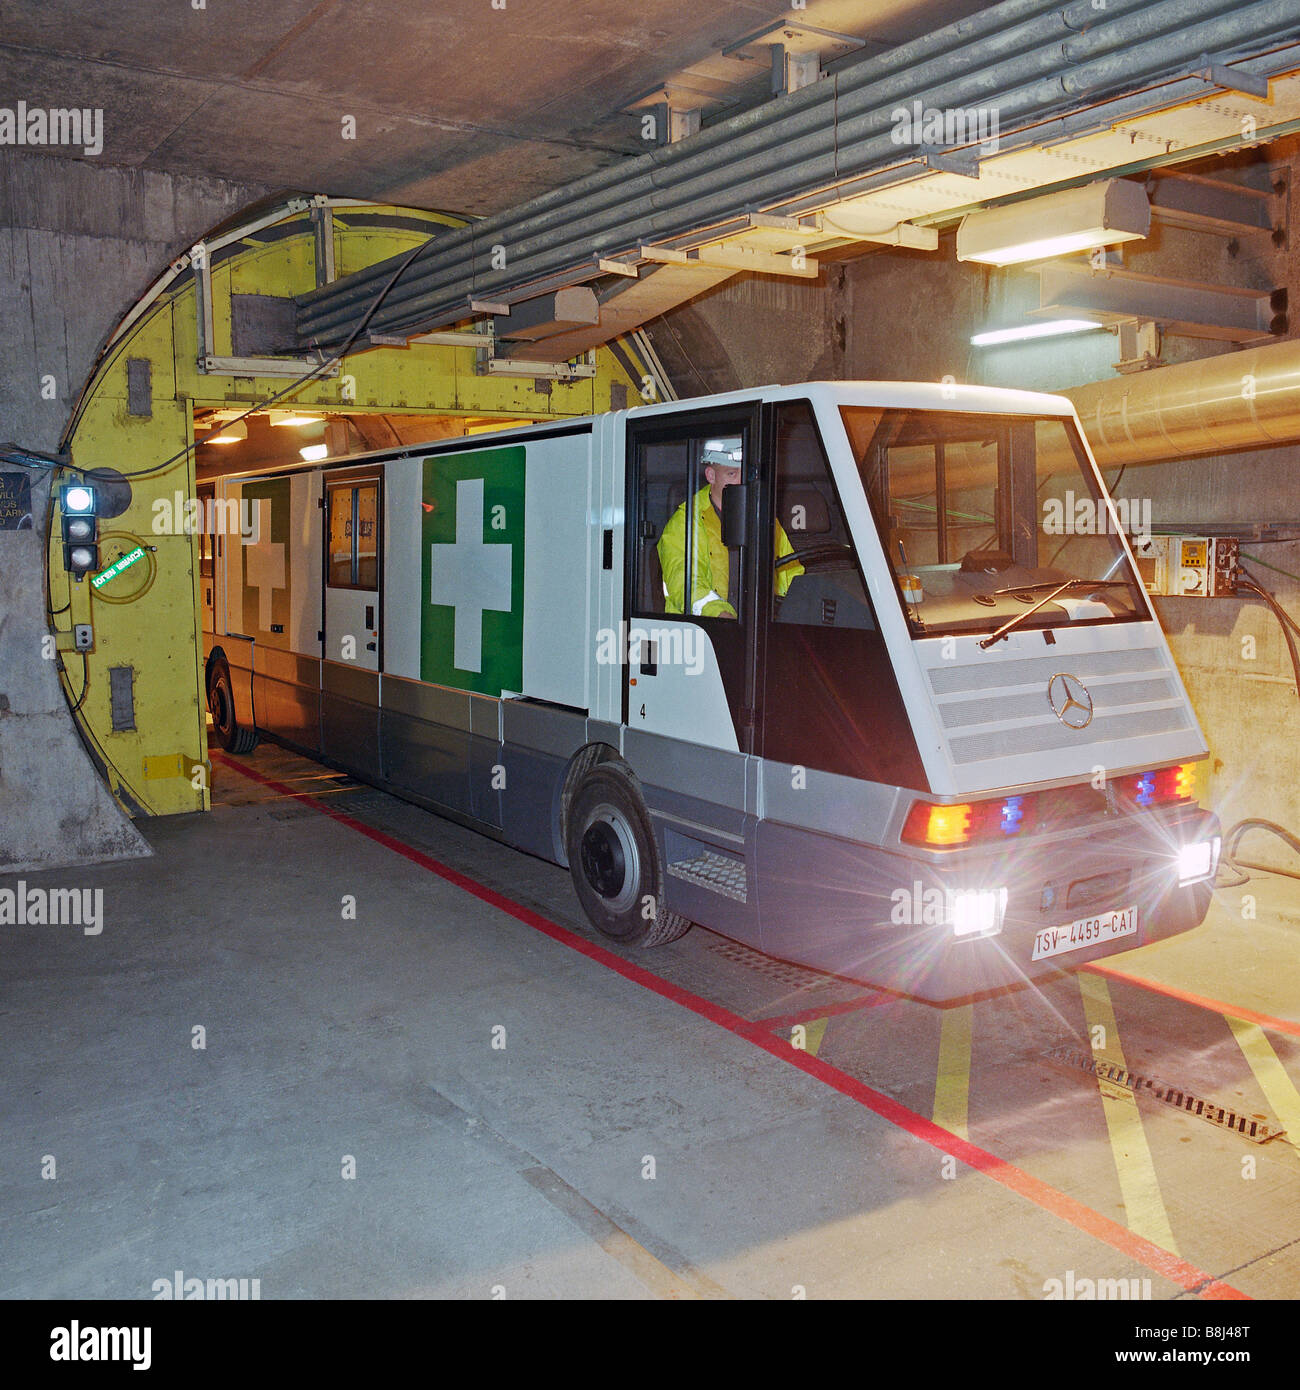 An Stts Ambulance Vehicle Specially Designed For The Channel Tunnel